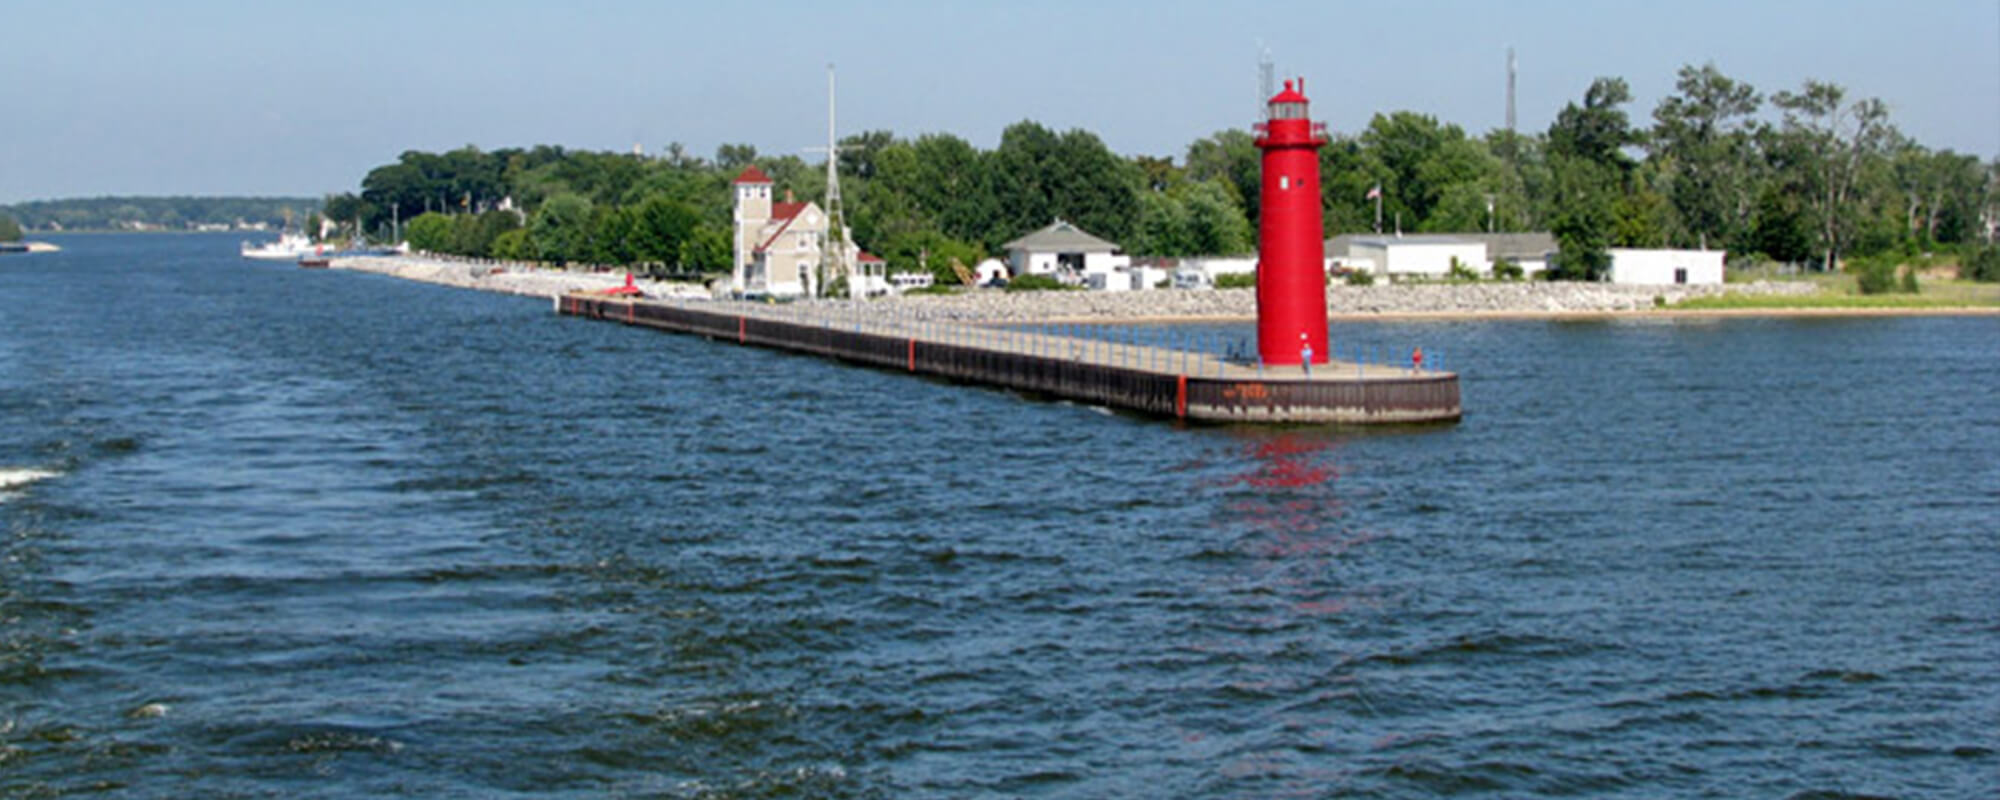 muskegon � hello west michigan